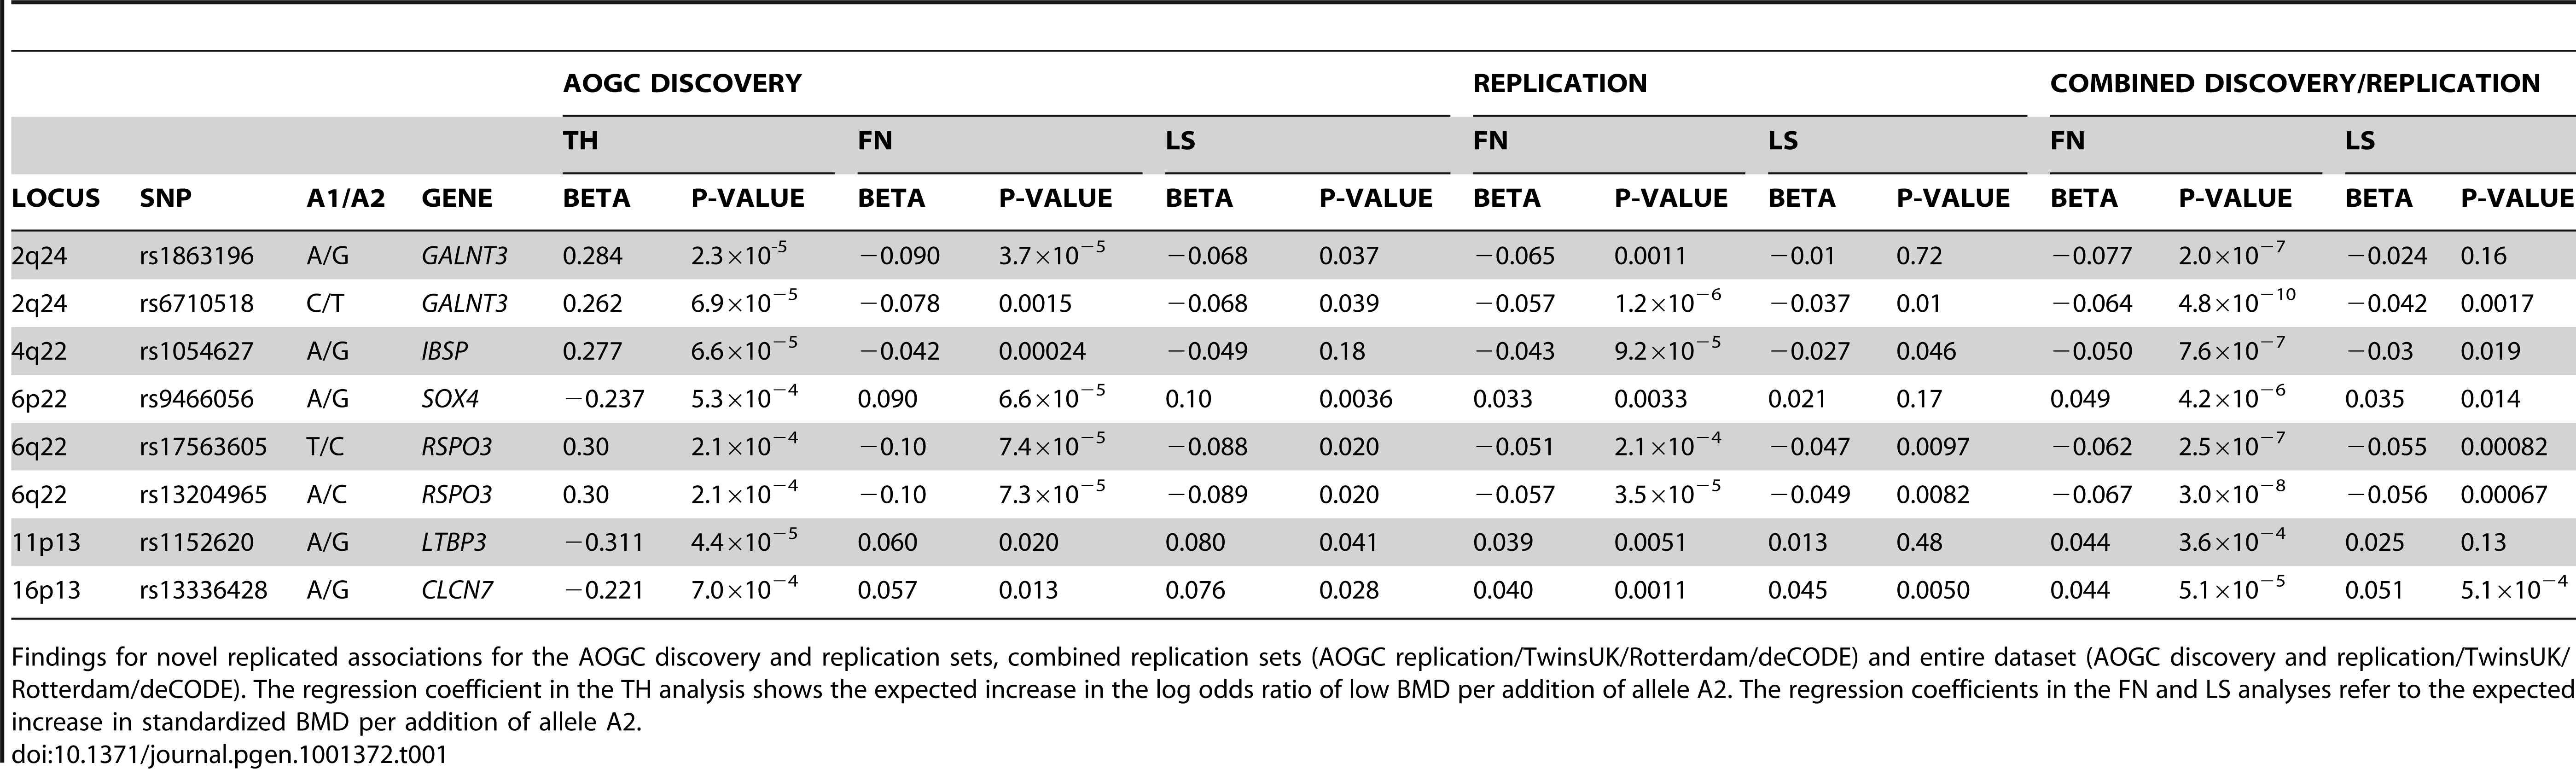 Findings for novel replicated associations.